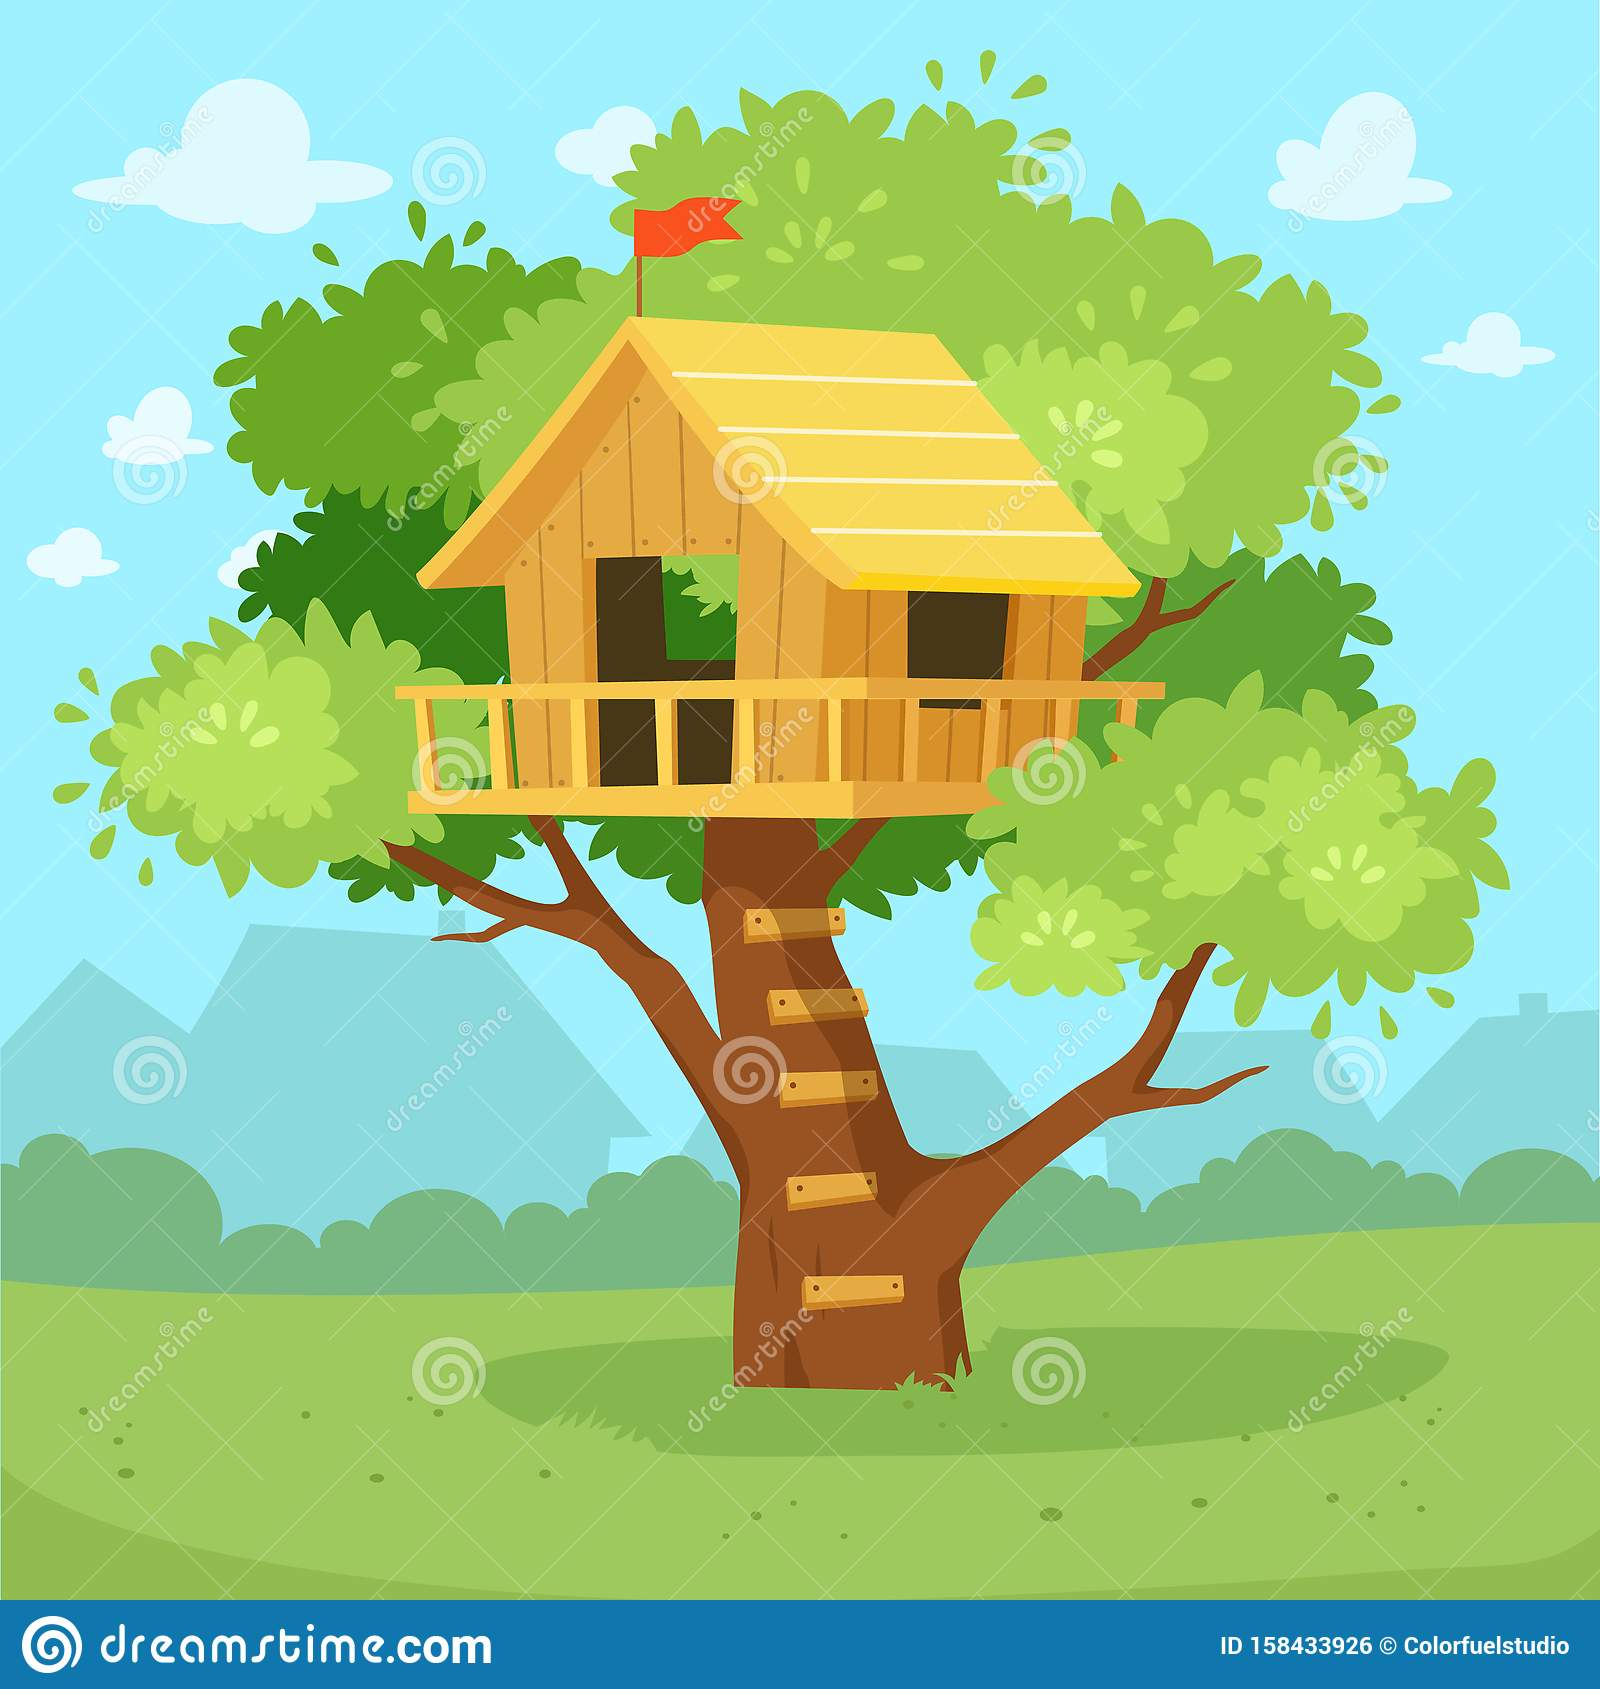 Cute Tree House Cartoon On Jungle Design Stock Vector Illustration Of Play Childhood 158433926 470x621 concept drawing for the steam punk treehouse by shane washburn. https www dreamstime com cute tree house cartoon jungle design kindergarten kids fantasy graphic oak children club play ladder swing drawing game image158433926